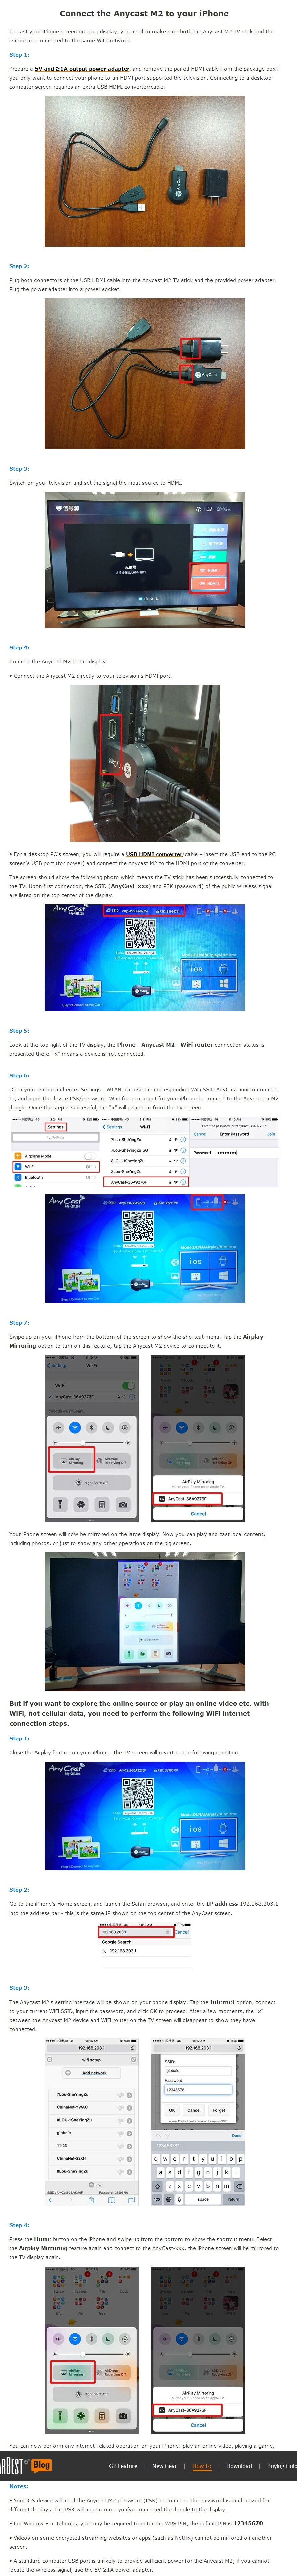 AnyCast M3 Plus Dual Core H265 1080p Airplay MiraCast Wifi Wireless Display  Dongle